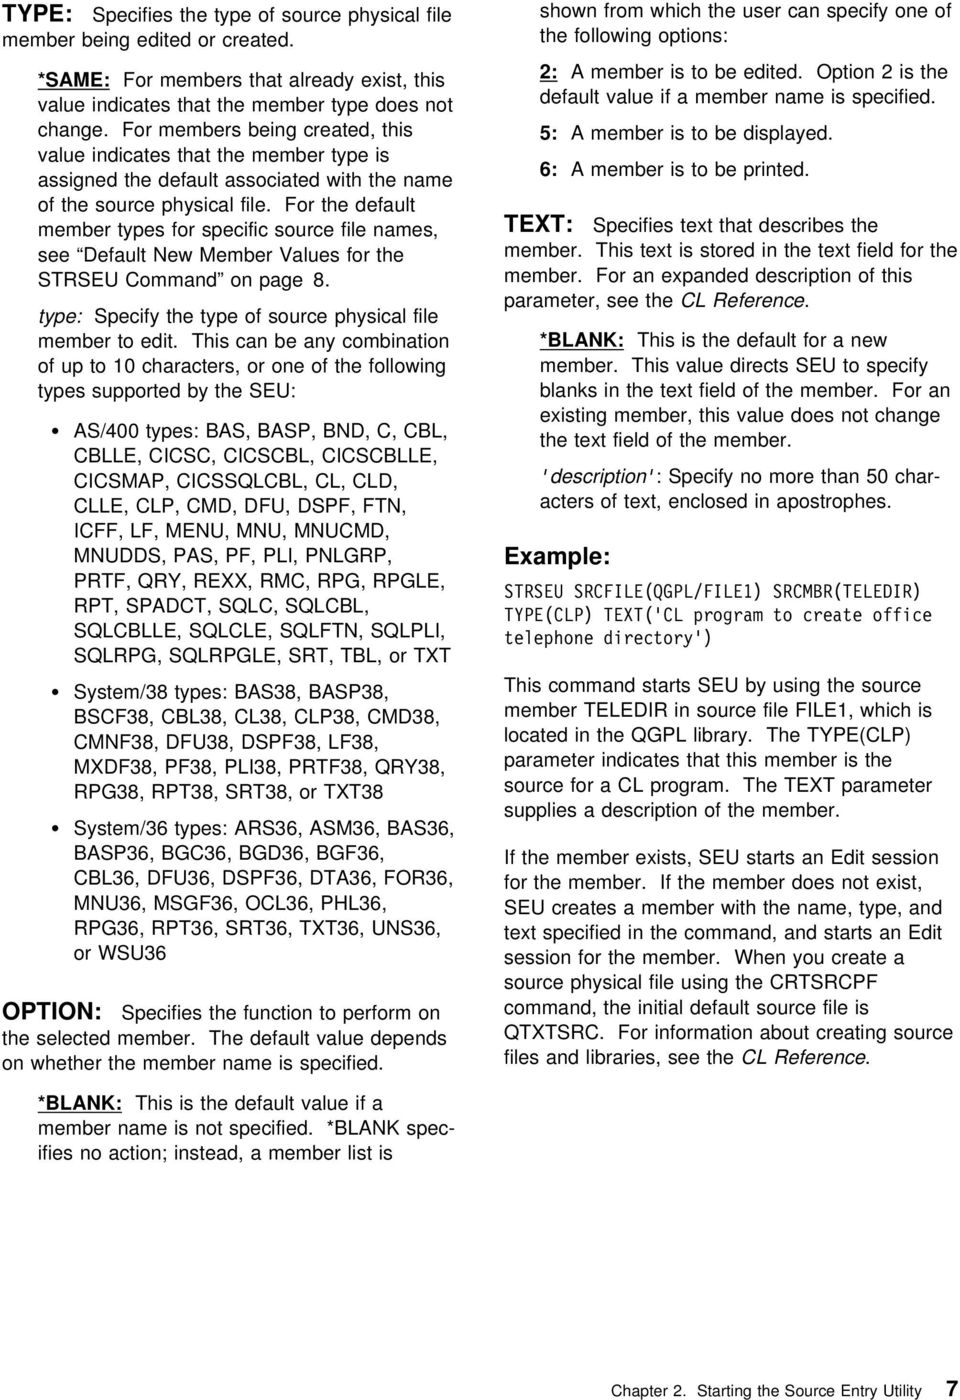 Cl Commands In As400 Pdf